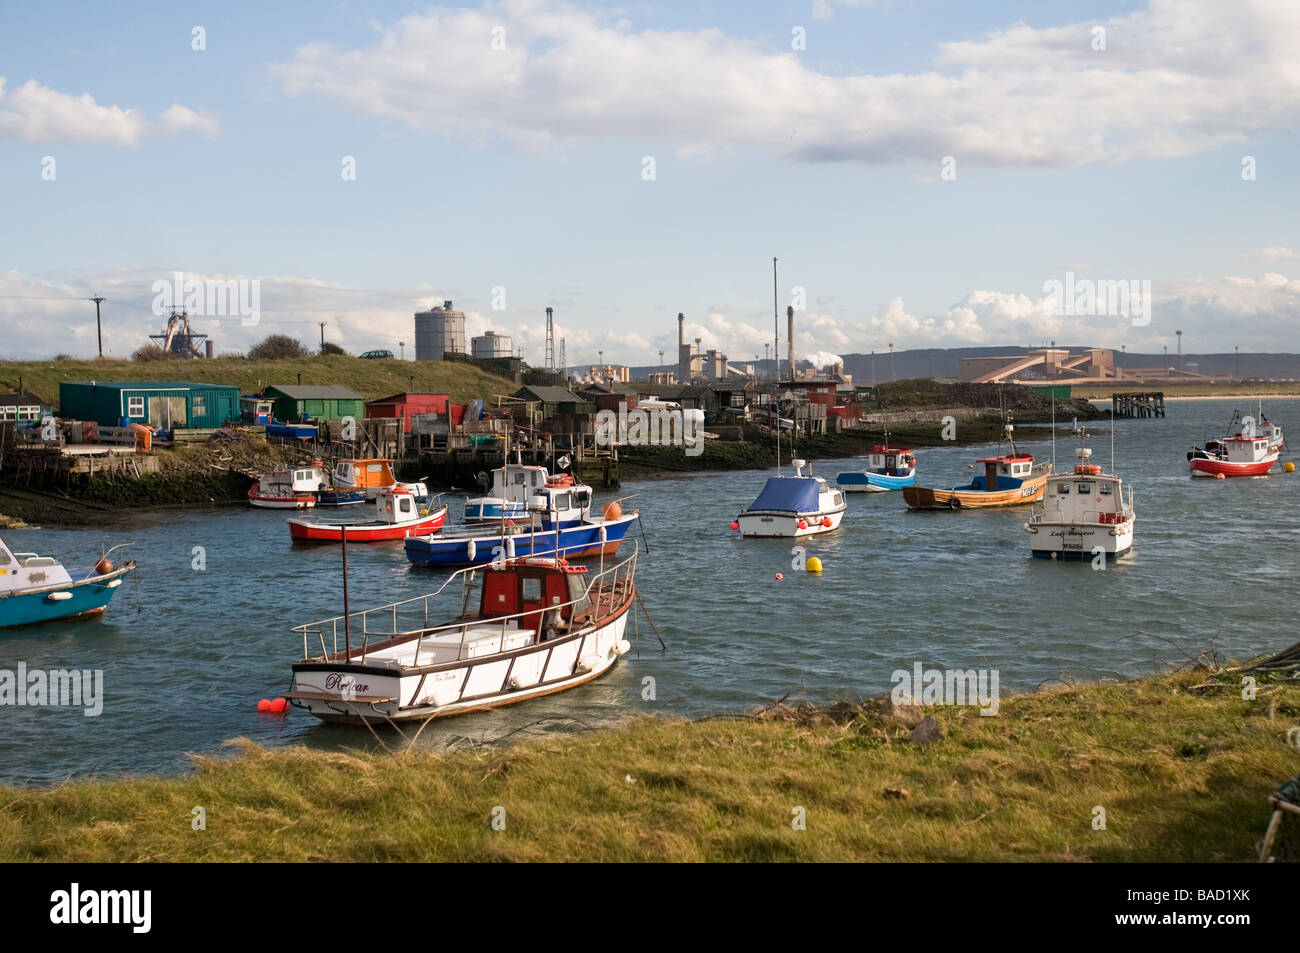 Fishing boats at Paddy's Hole, Redcar, Cleveland - Stock Image